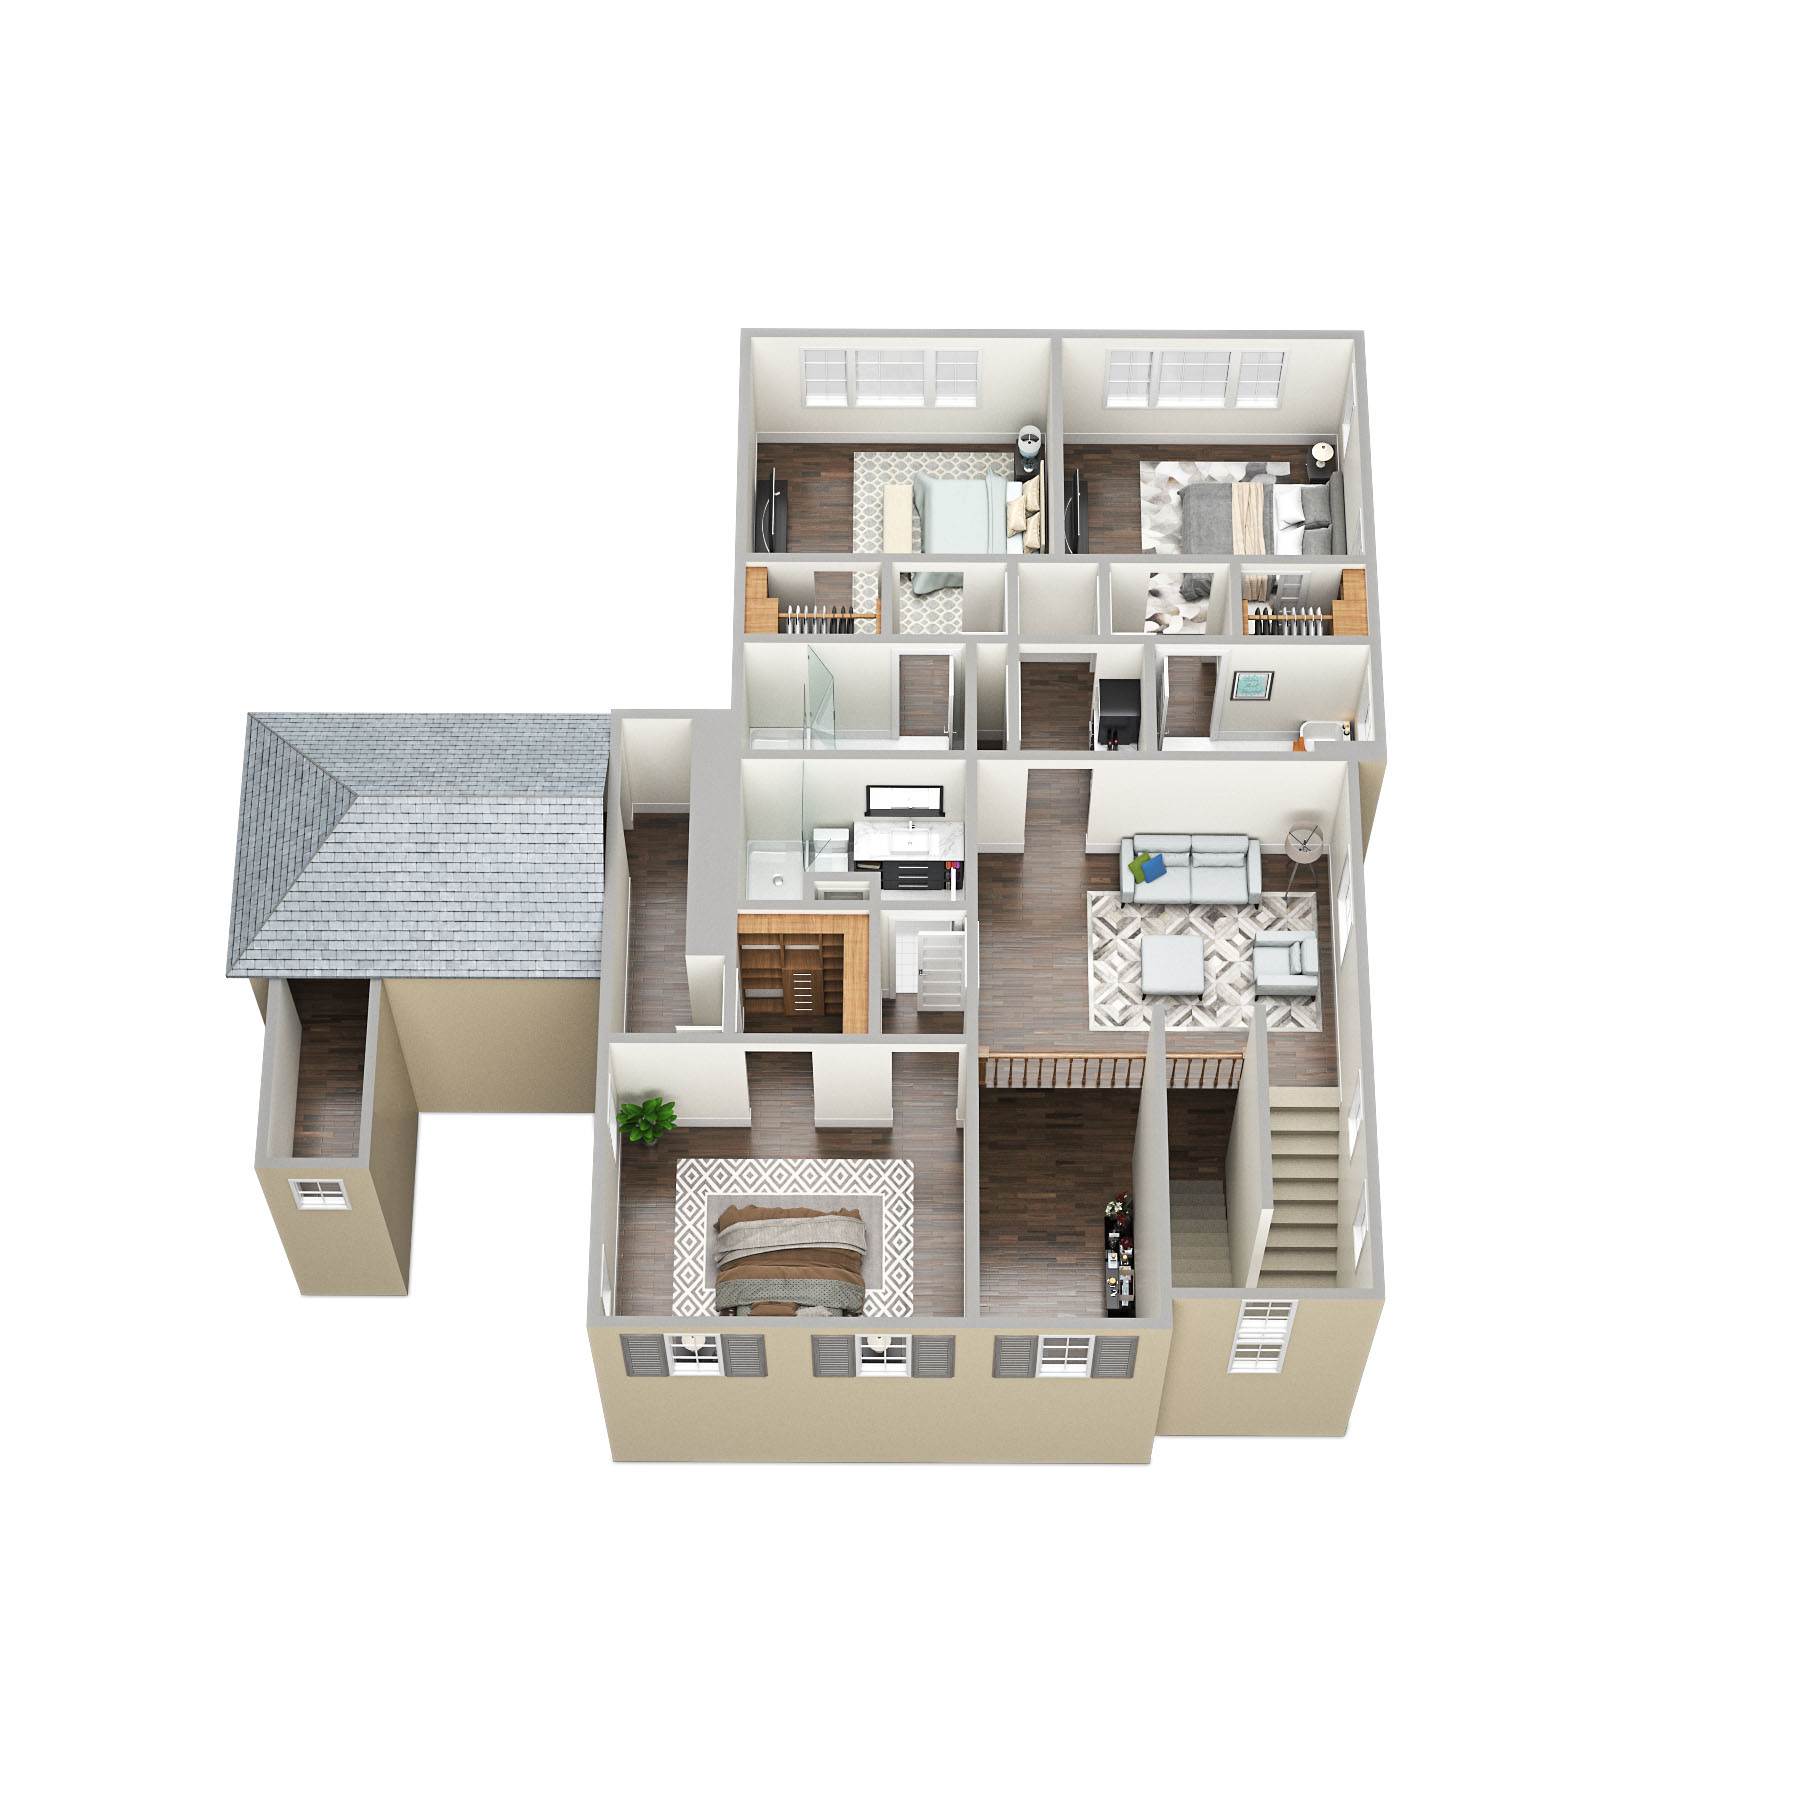 SawyerSound Weston 2-nd floor 3D floorplan  by Tsymbals